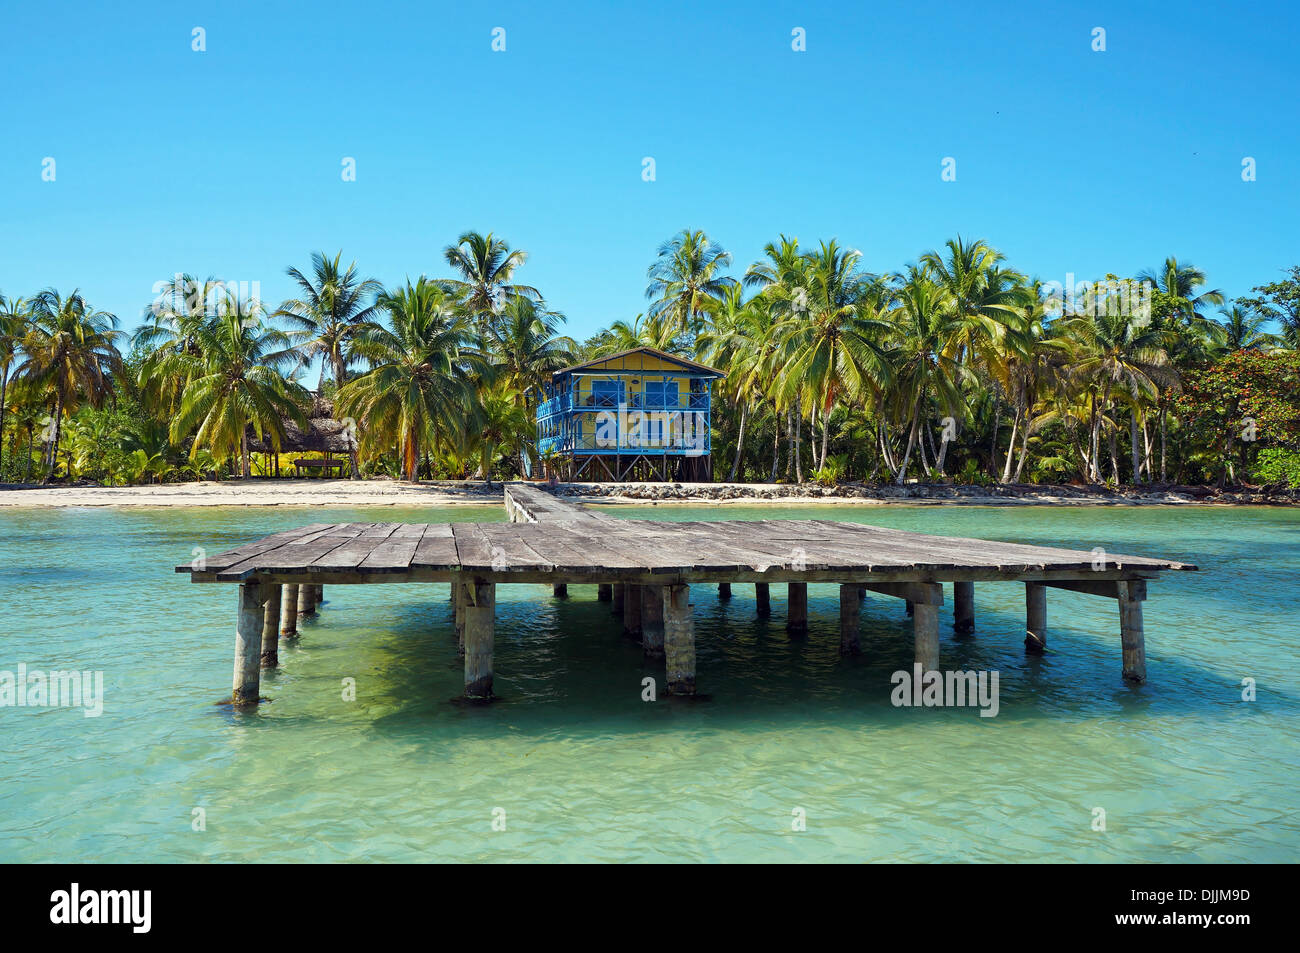 Tropical coastline with beach house and its dock, Caribbean sea - Stock Image